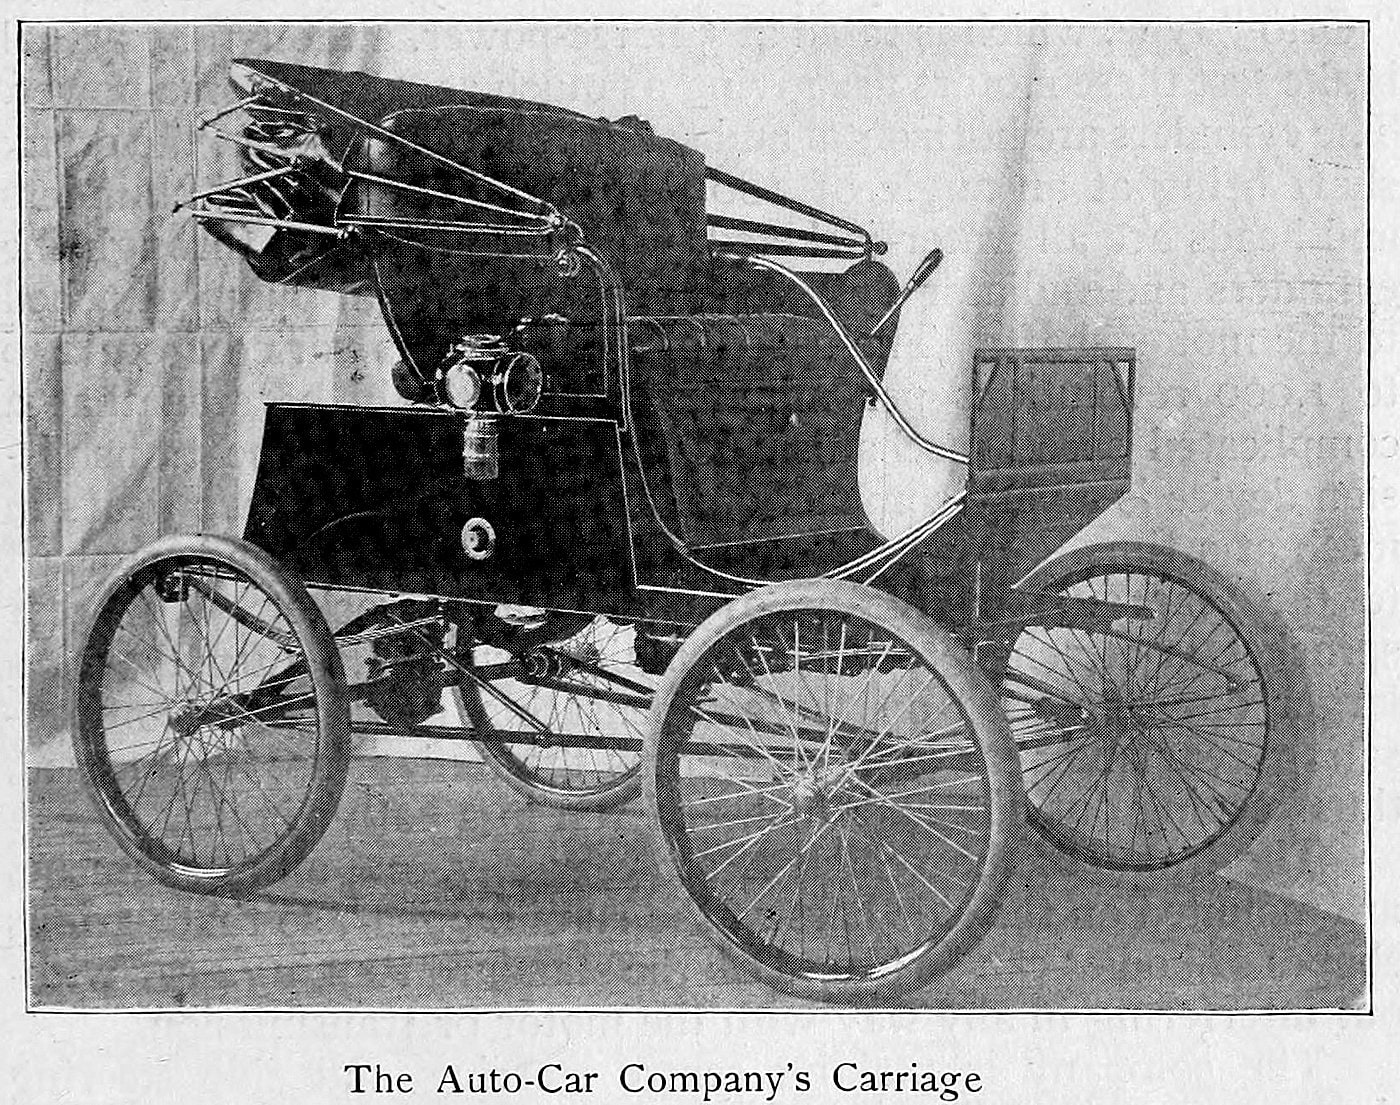 The Auto-Car Company's carriage (1900)